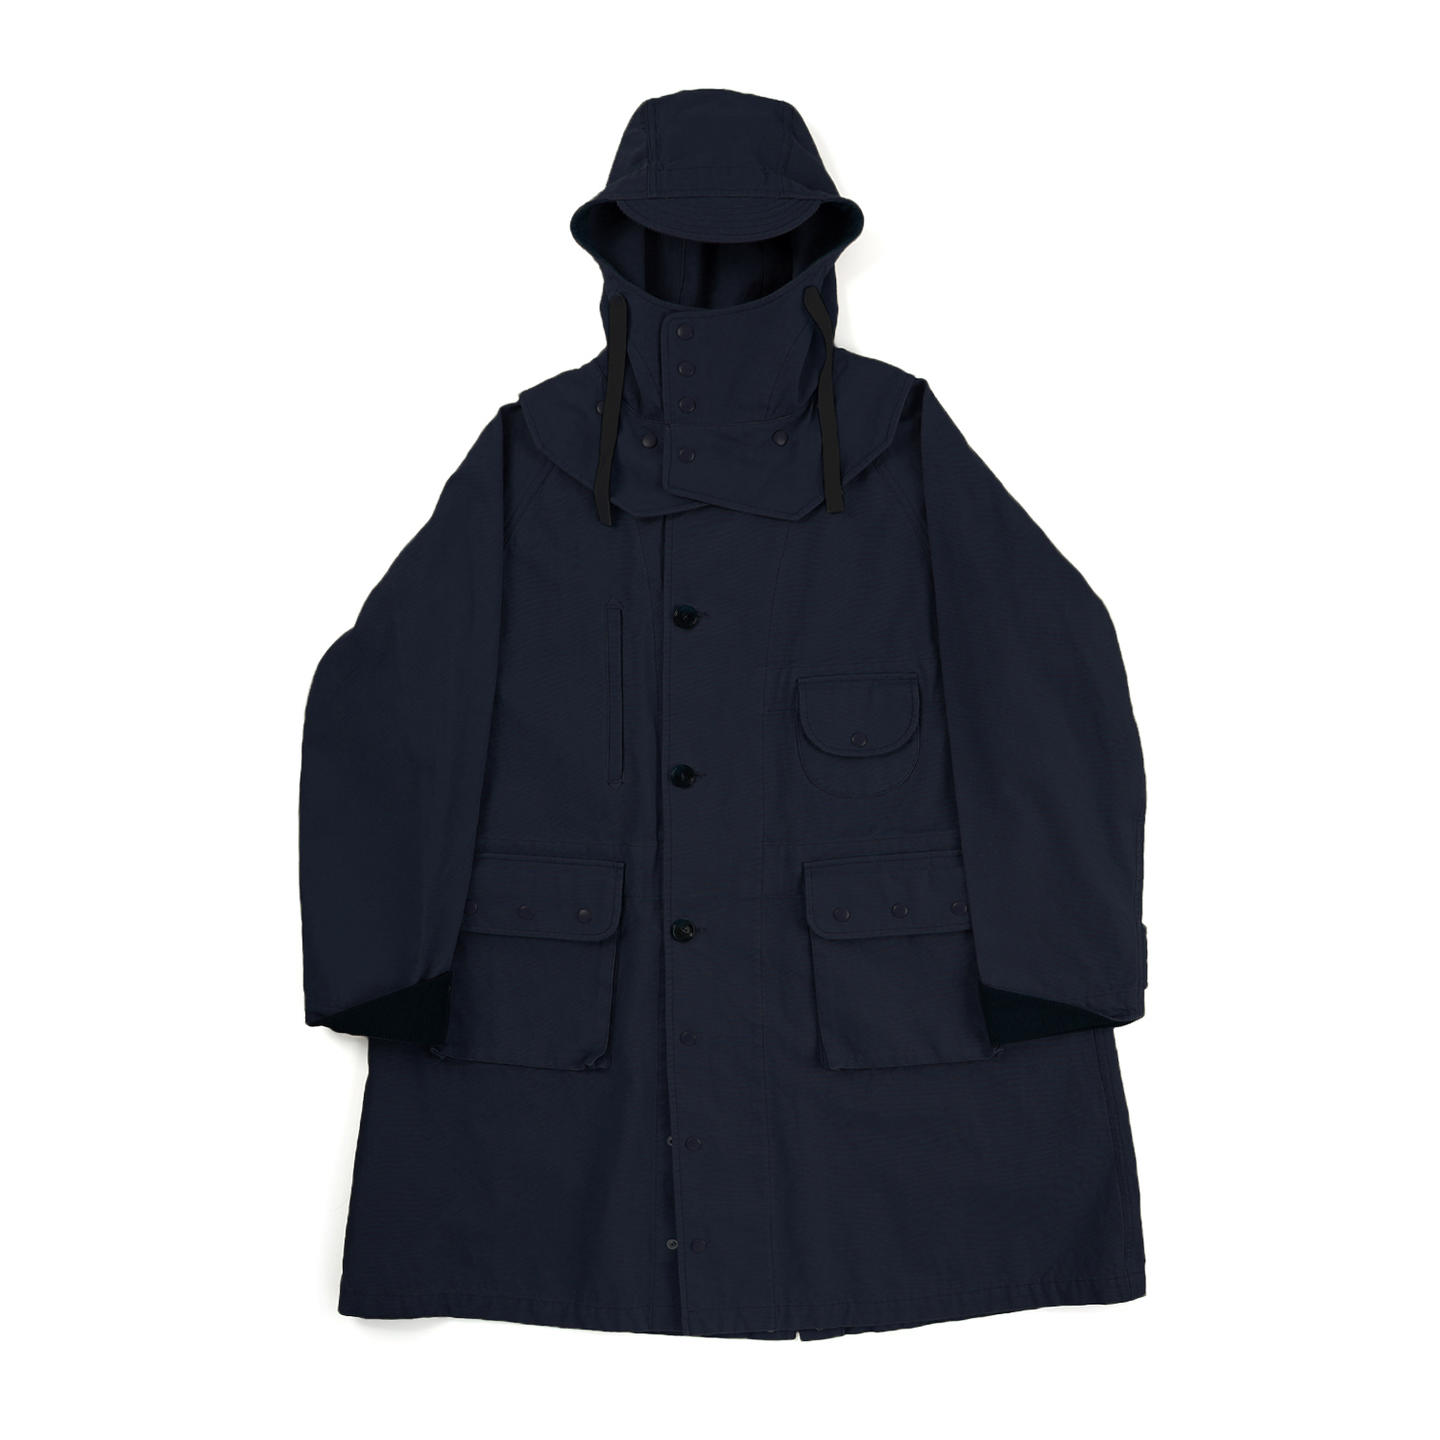 MOUNTAIN DIVISION PARKA (NAVY)